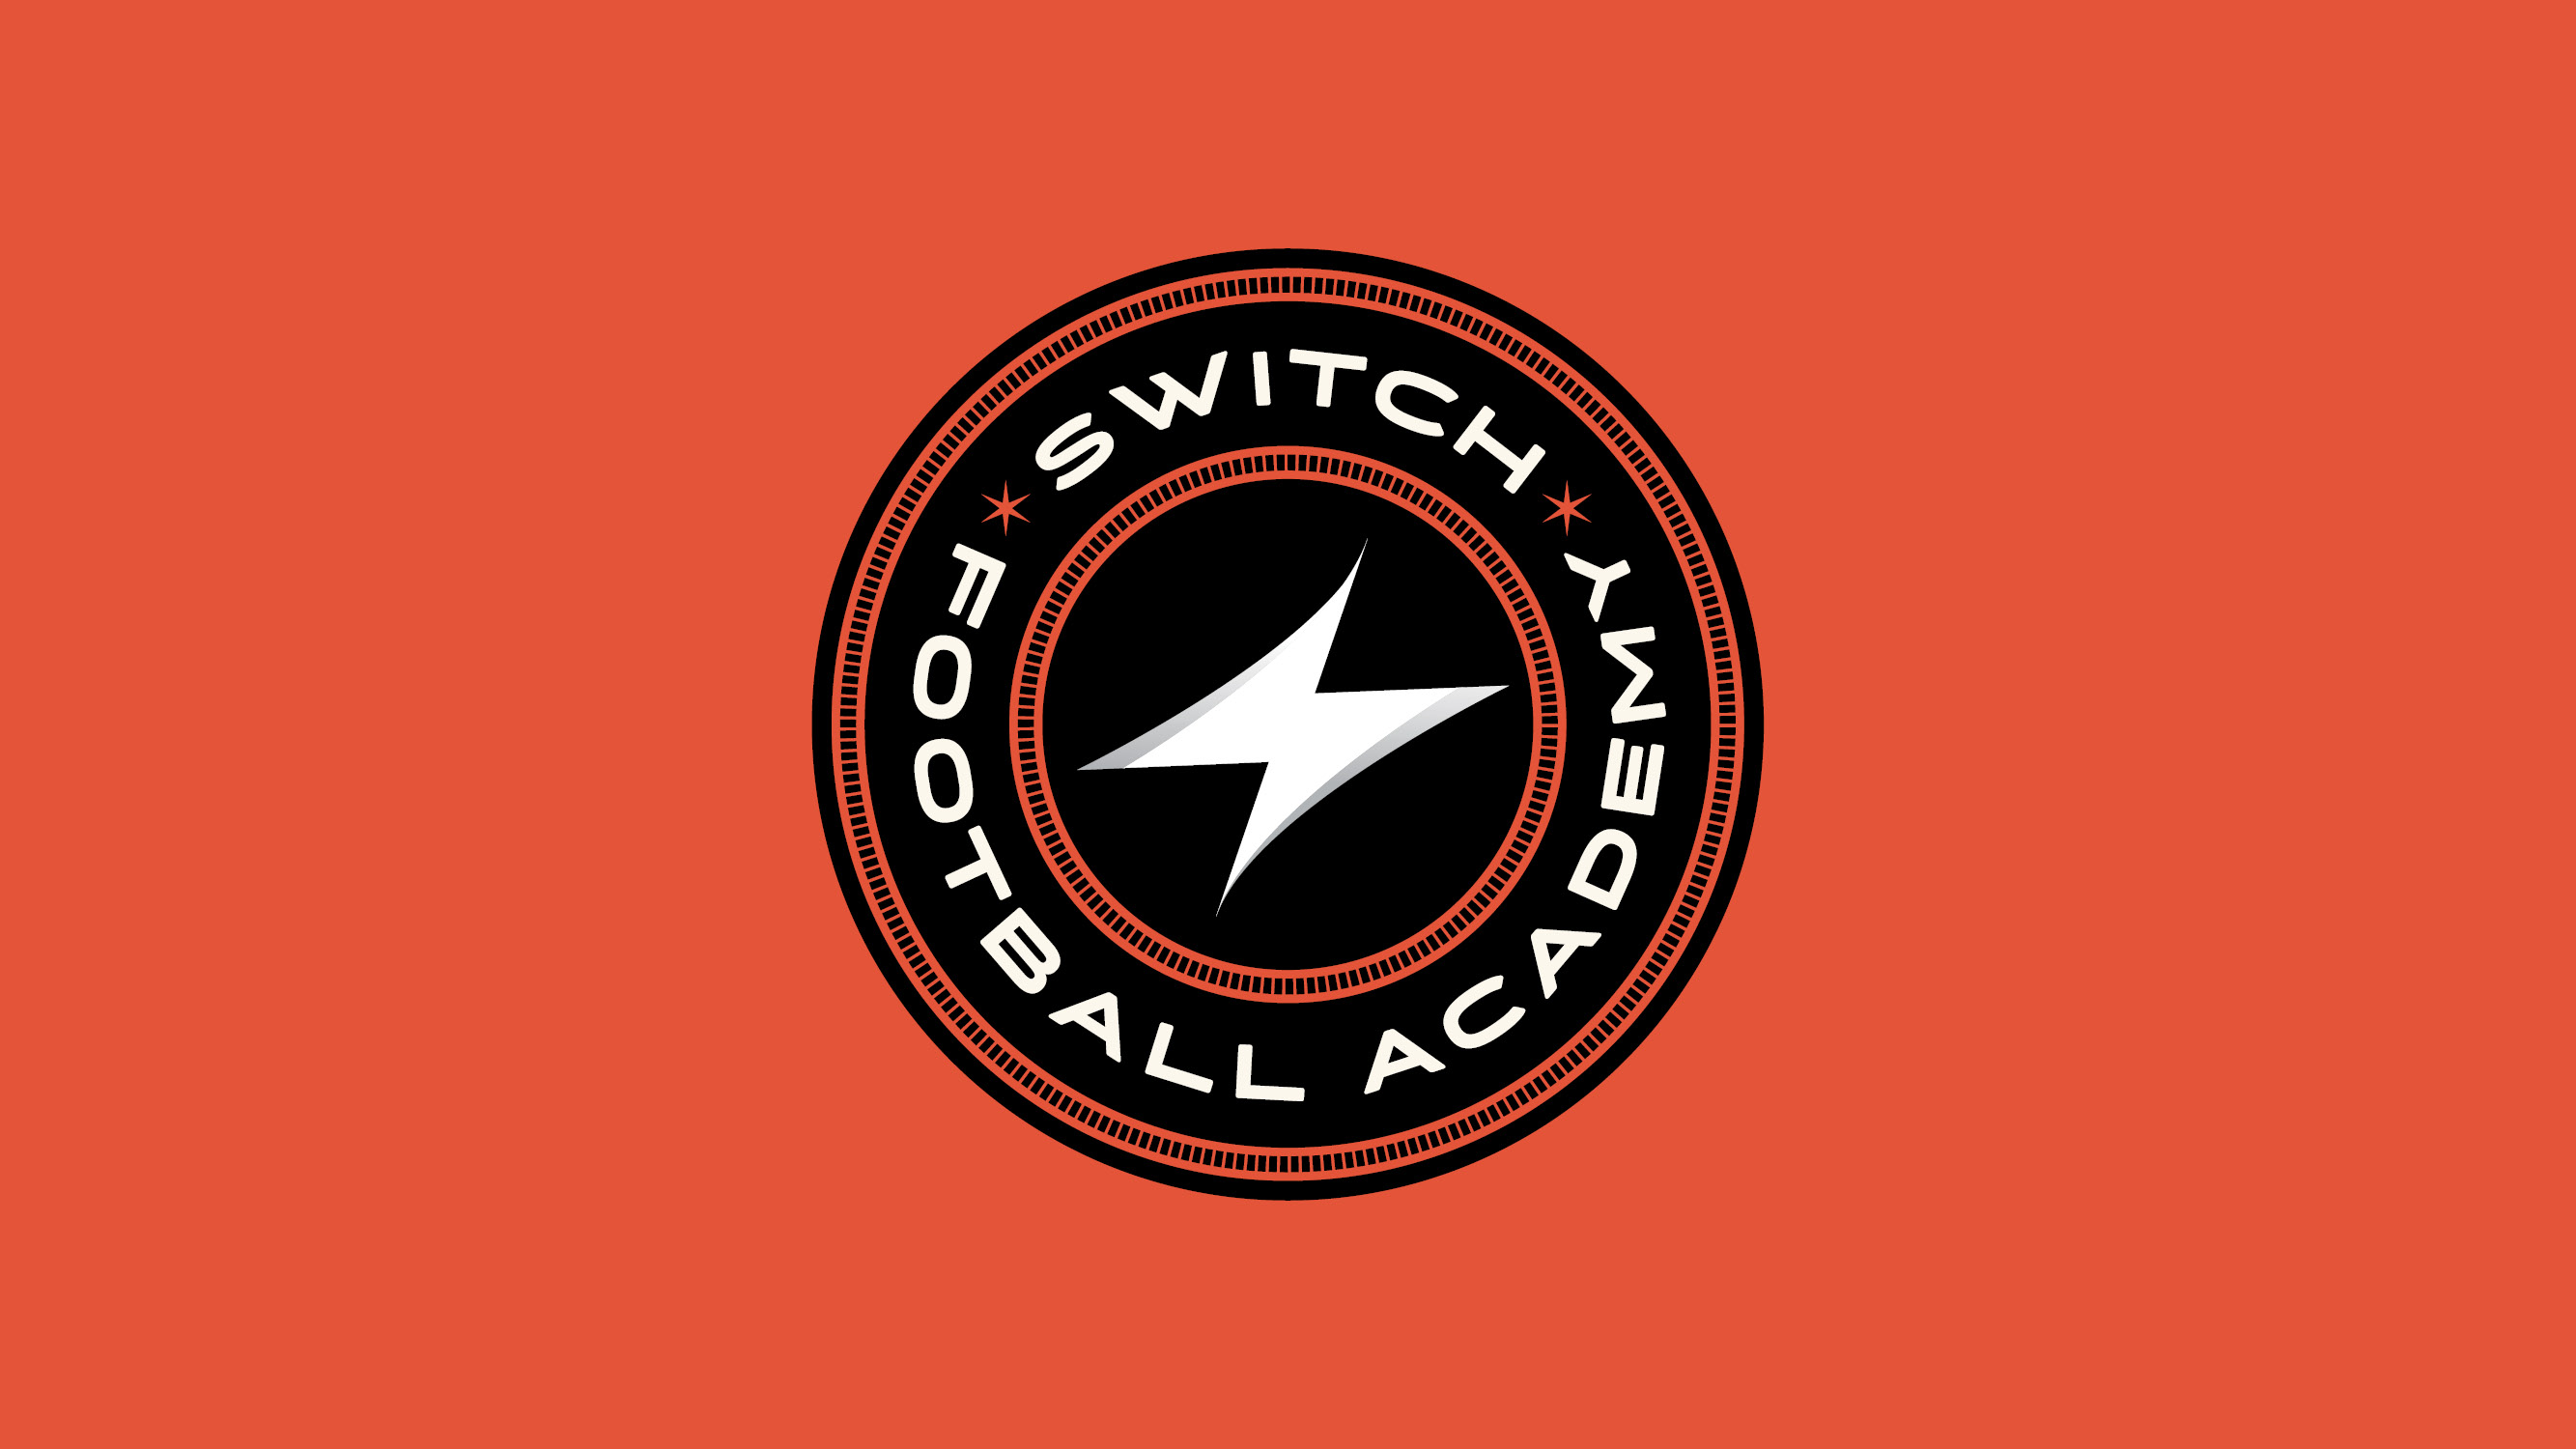 201902 Nacione Branding - Switch Football Academy